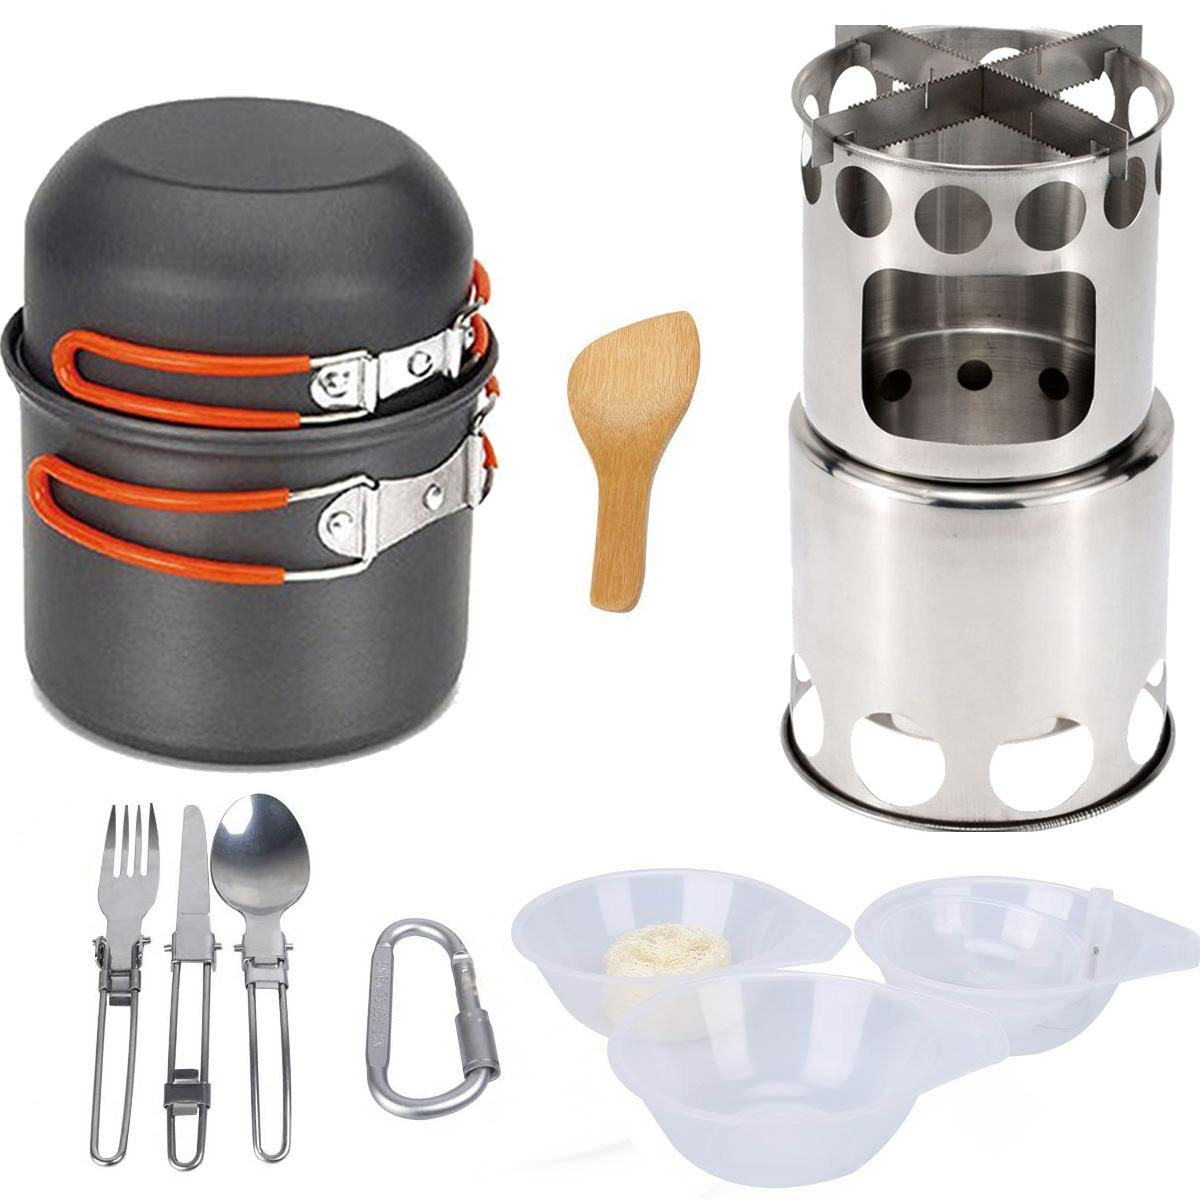 Camping Chef Kooktoestel.Camping Cookware Bowl Pot Pan Tableware Stove Kooktoestel Cooking System Outdoor Cooker Portable Gas Stove Propane Burners Camp Chef Outdoor Camp Oven